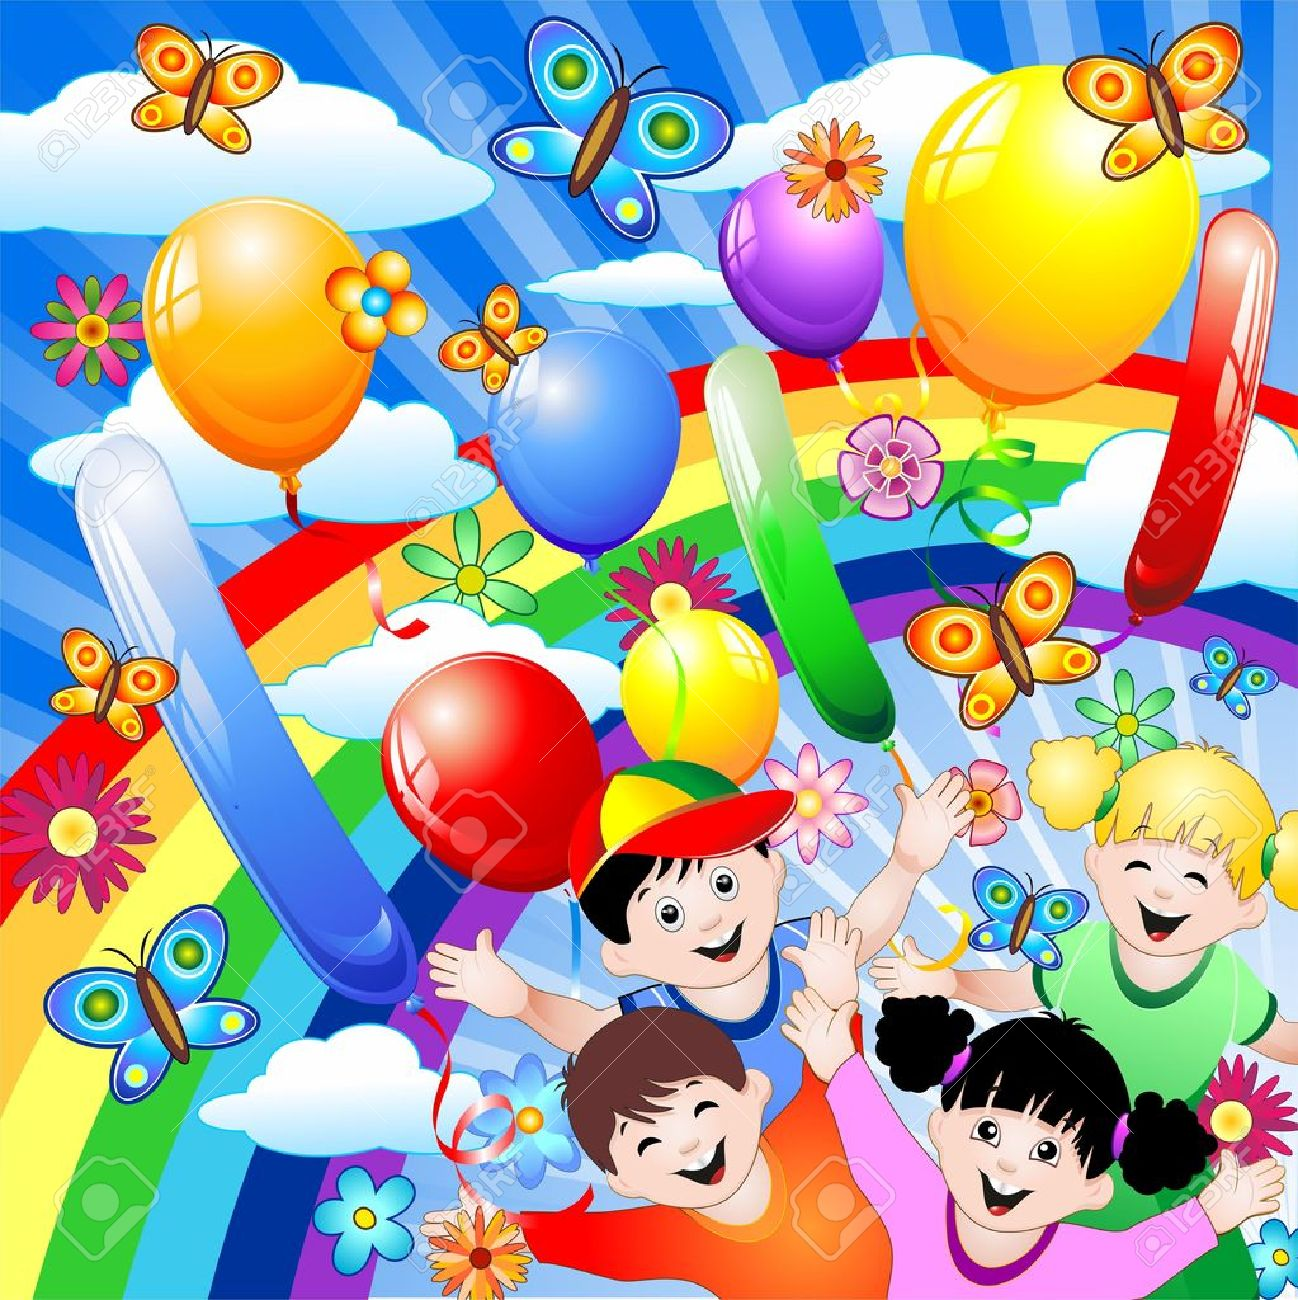 Happy Birthday Children Kids Royalty Free Cliparts Vectors And Stock Illustration Image 10509127